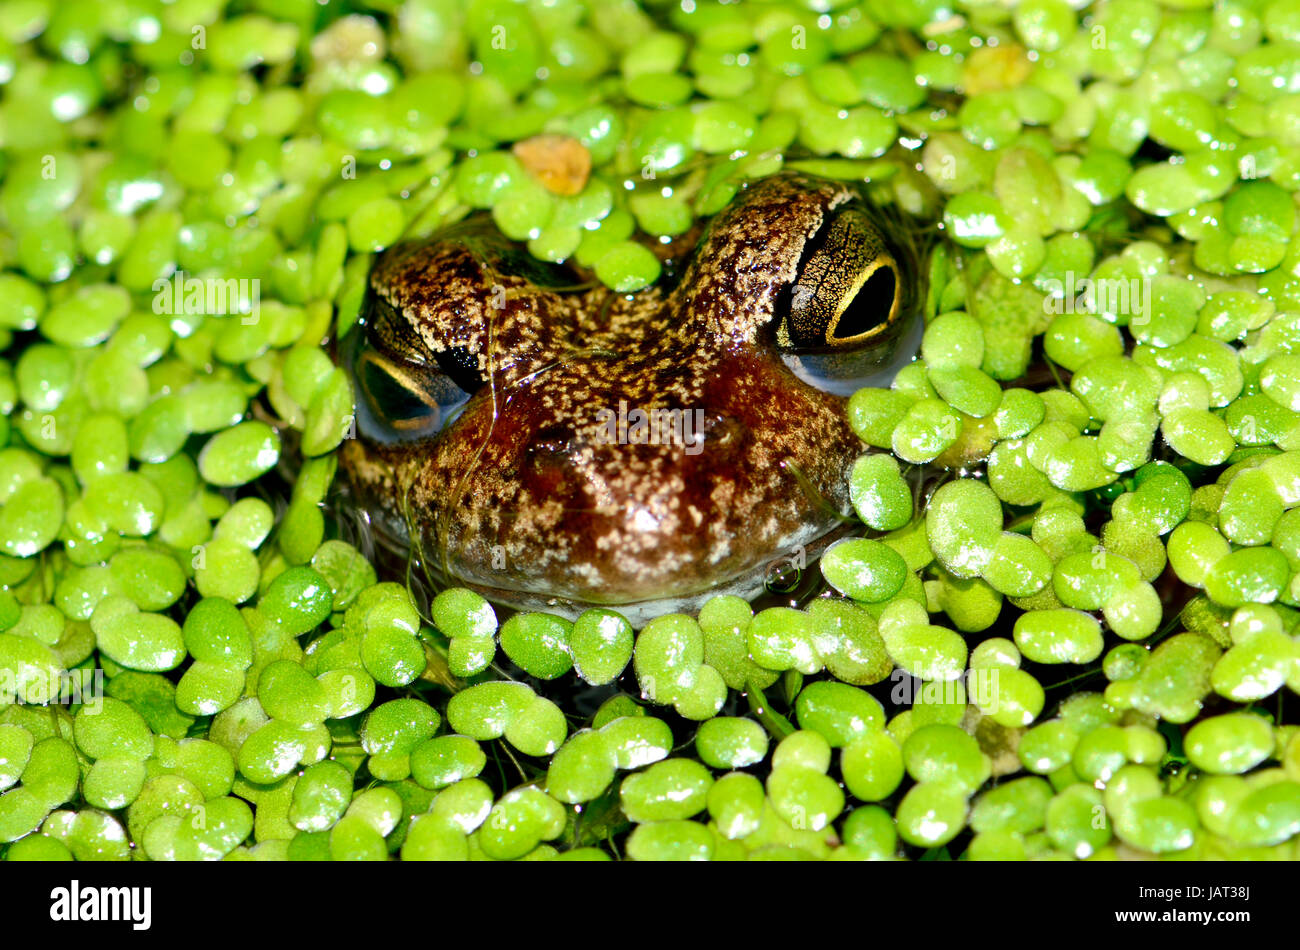 Common Frog (Rana temporaria) in garden pond, covered with lesser duck weed (lemna minor) - Stock Image